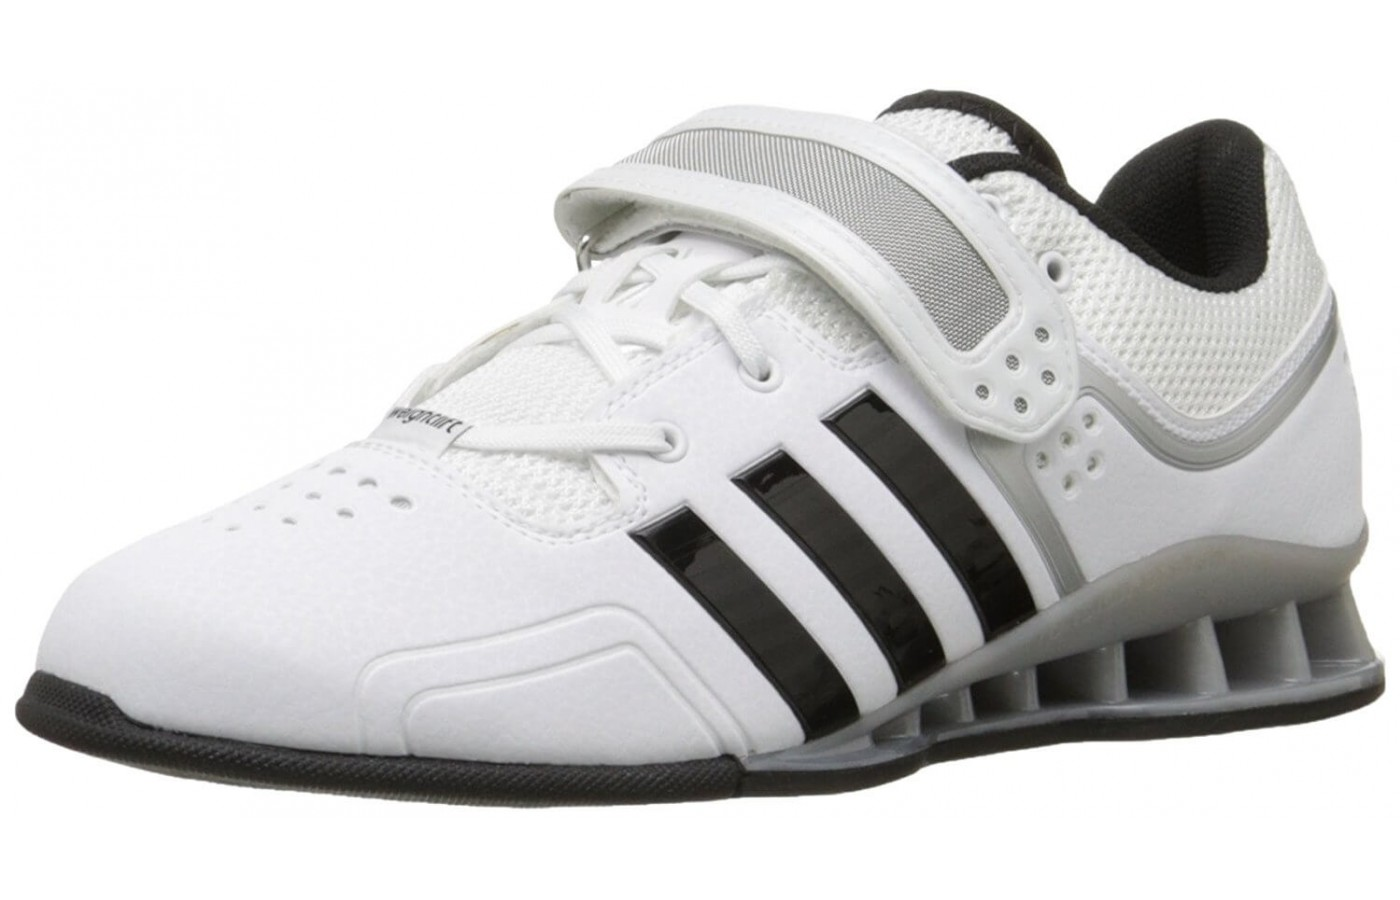 The Adidas Adipower Weightlifting shoes are specifically designed for Olympic style weight lifting